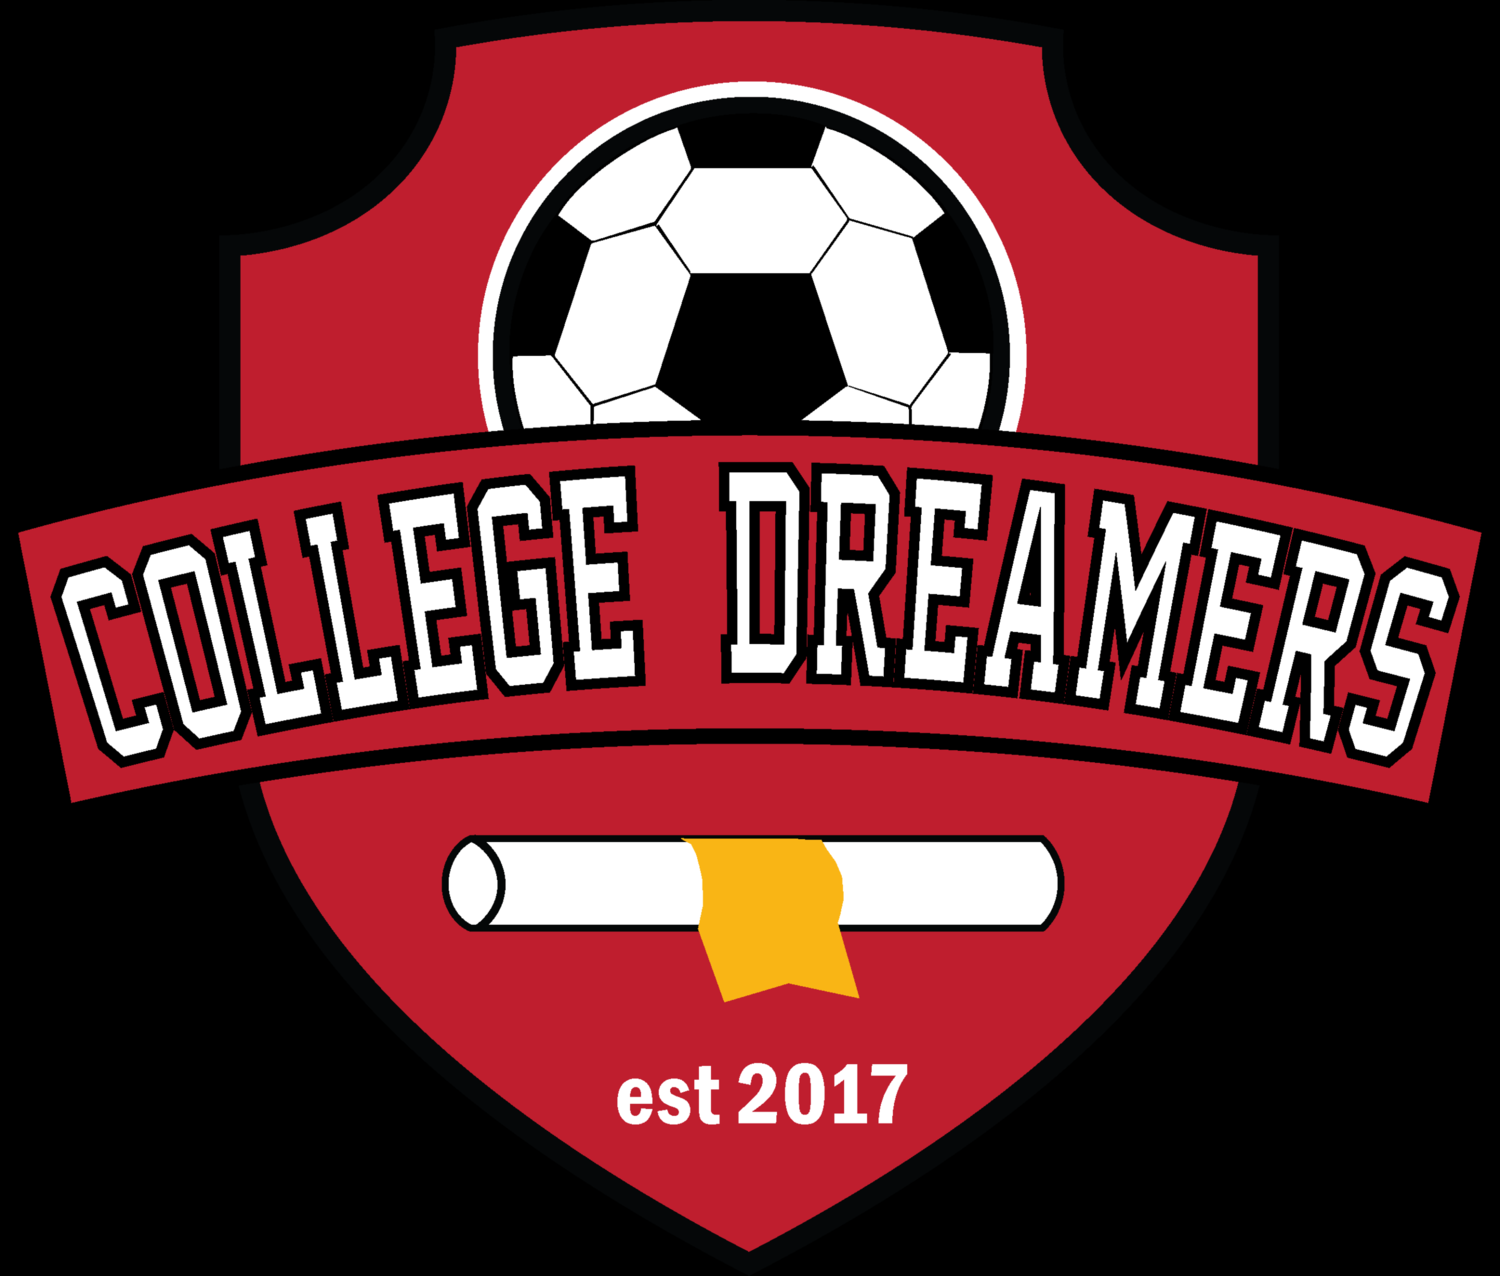 College Dreamers | Training for Champs